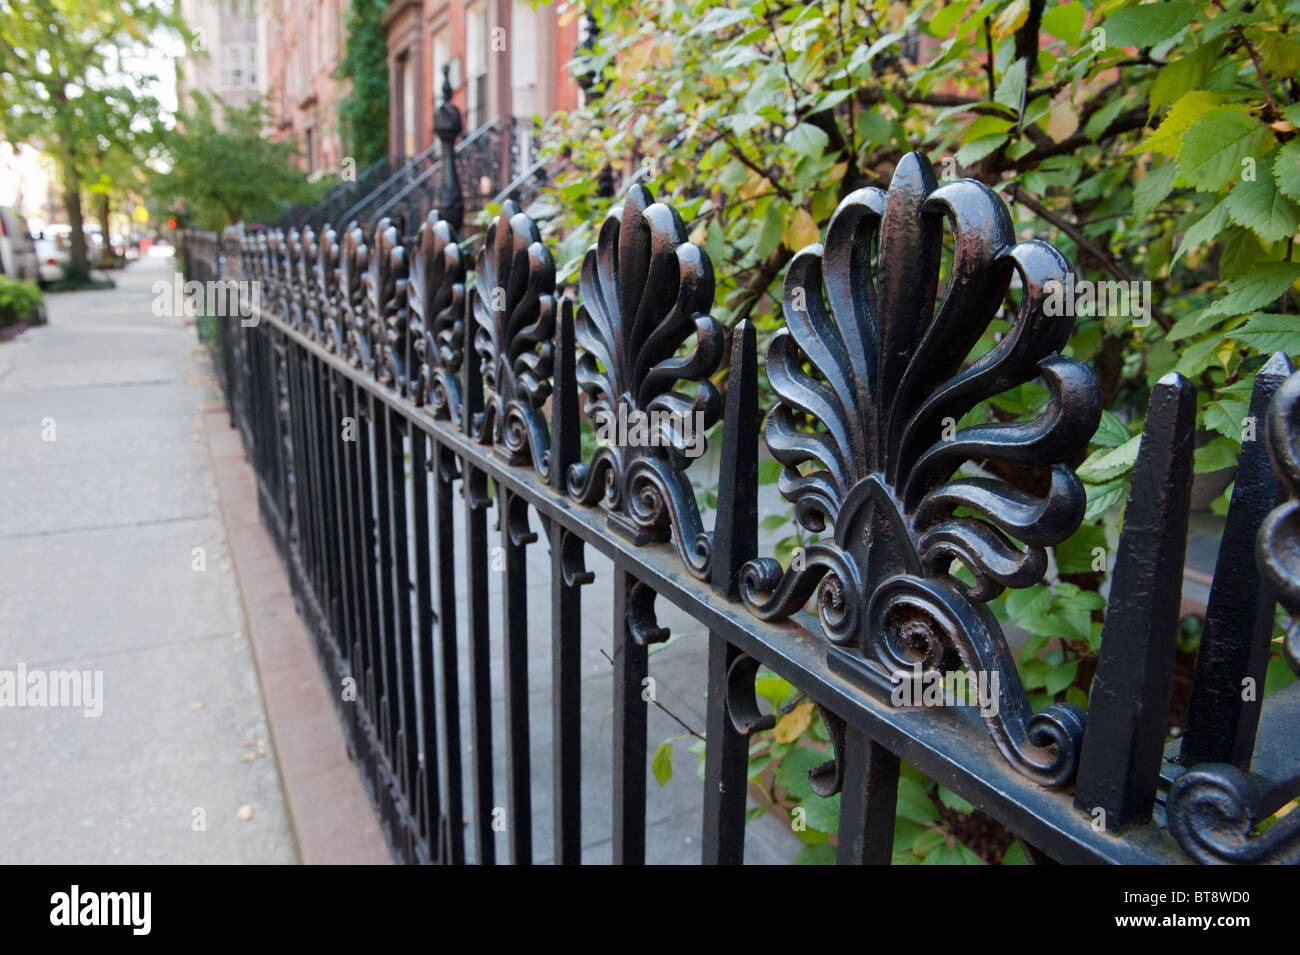 Detail of ornate iron railings on street in Chelsea district of Manhattan New York City - Stock Image